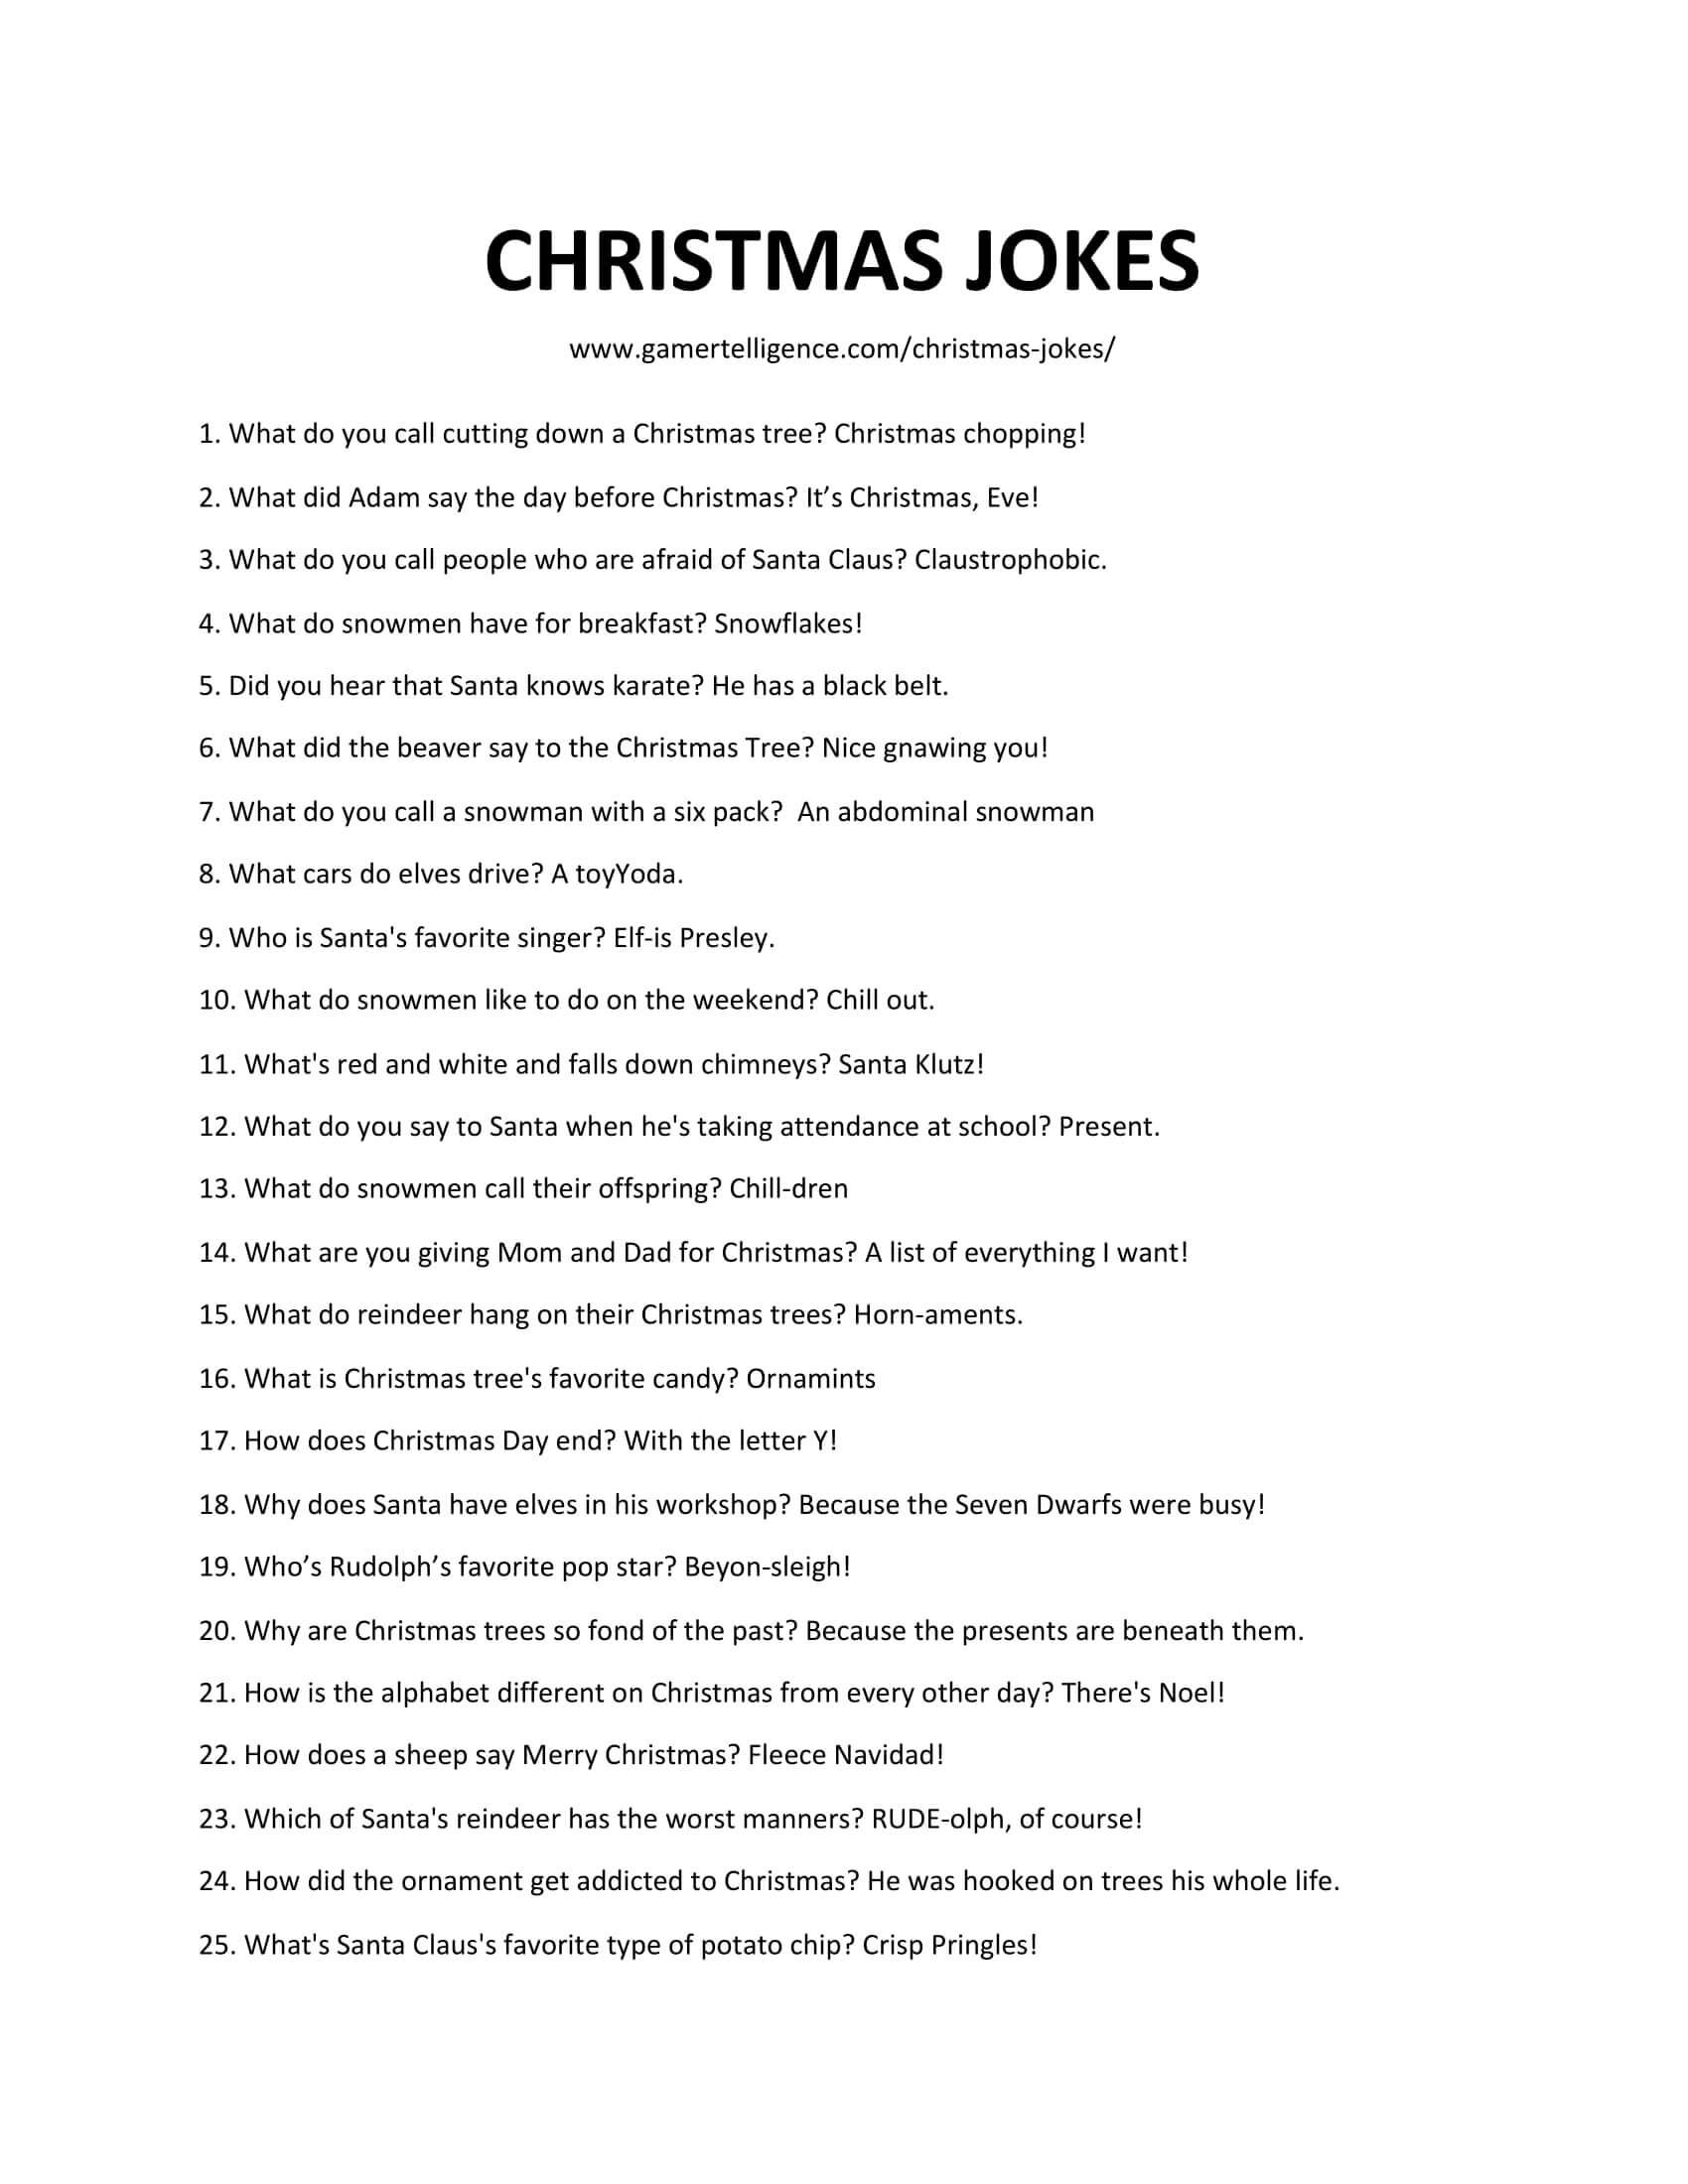 Downloadable and printable list of Christmas jokes in jpg or pdf format